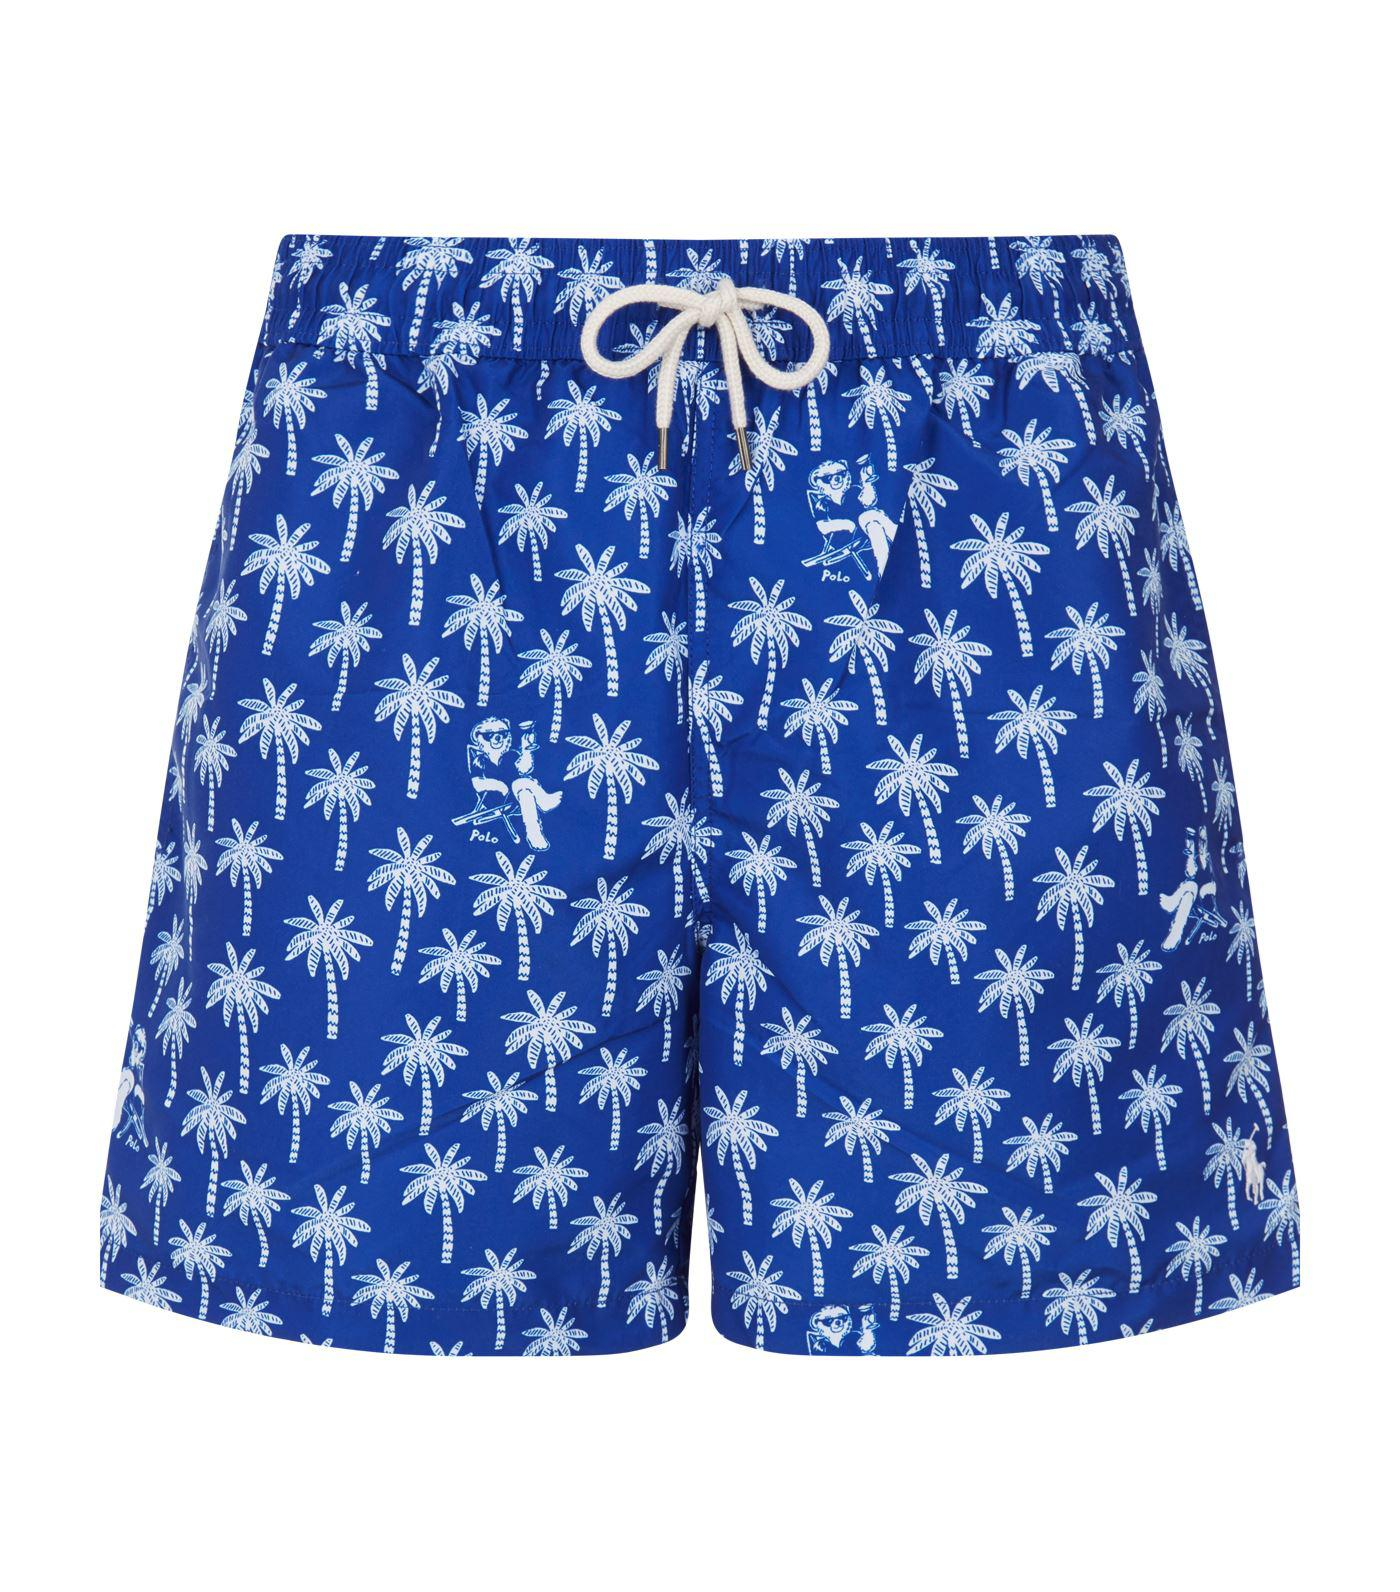 2d2781807b Lyst - Polo Ralph Lauren Palmtree Swim Shorts in Blue for Men